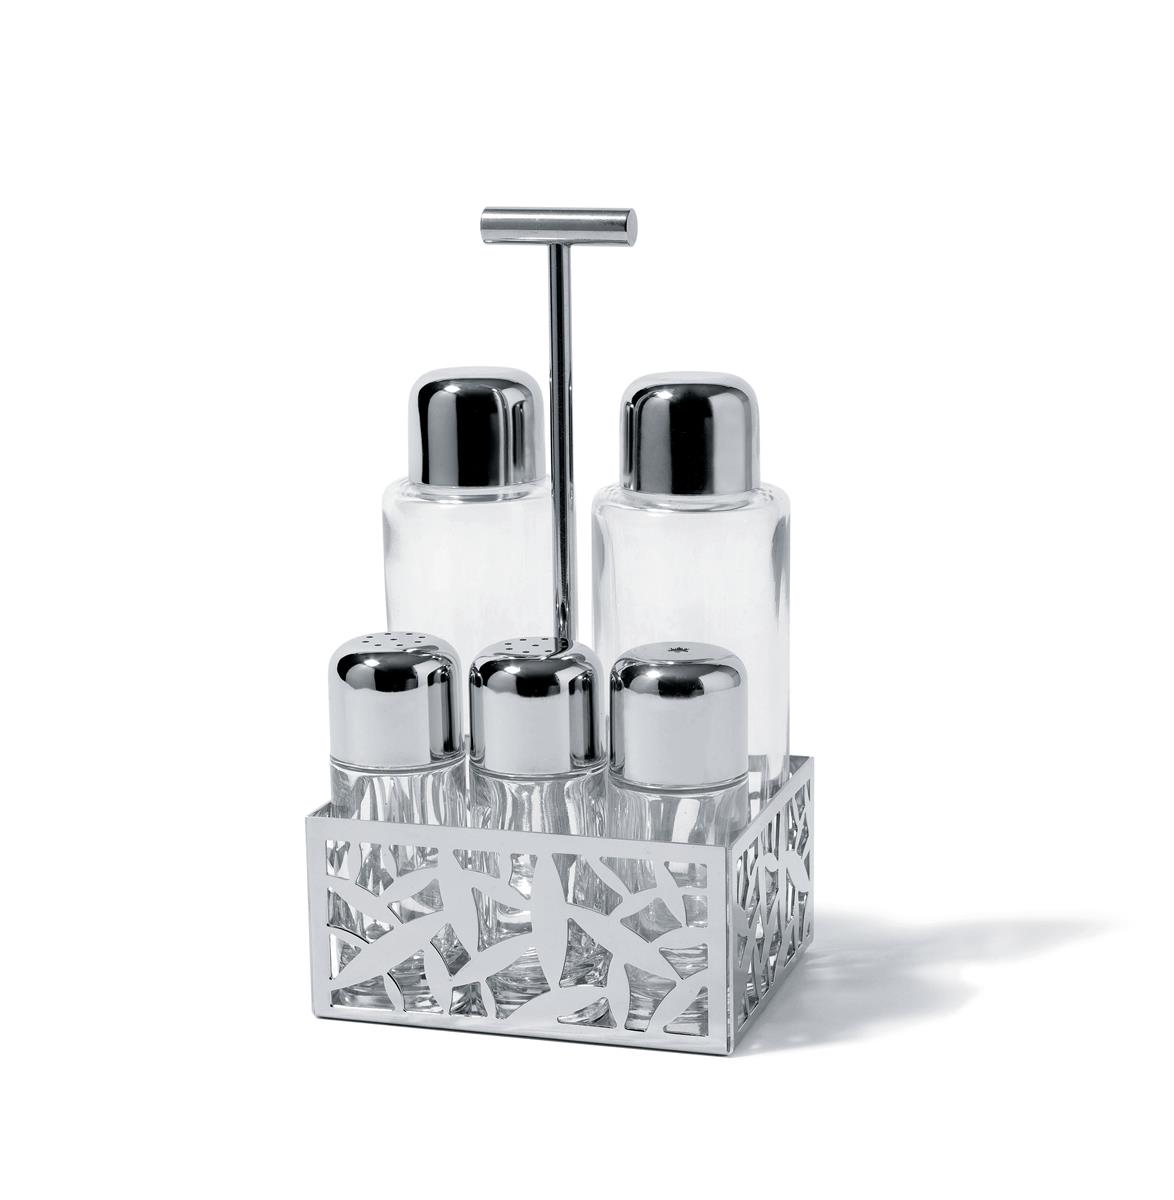 Alessi-CACTUS! Set for oil, vinegar, salt, pepper and spices in 18/10 stainless steel